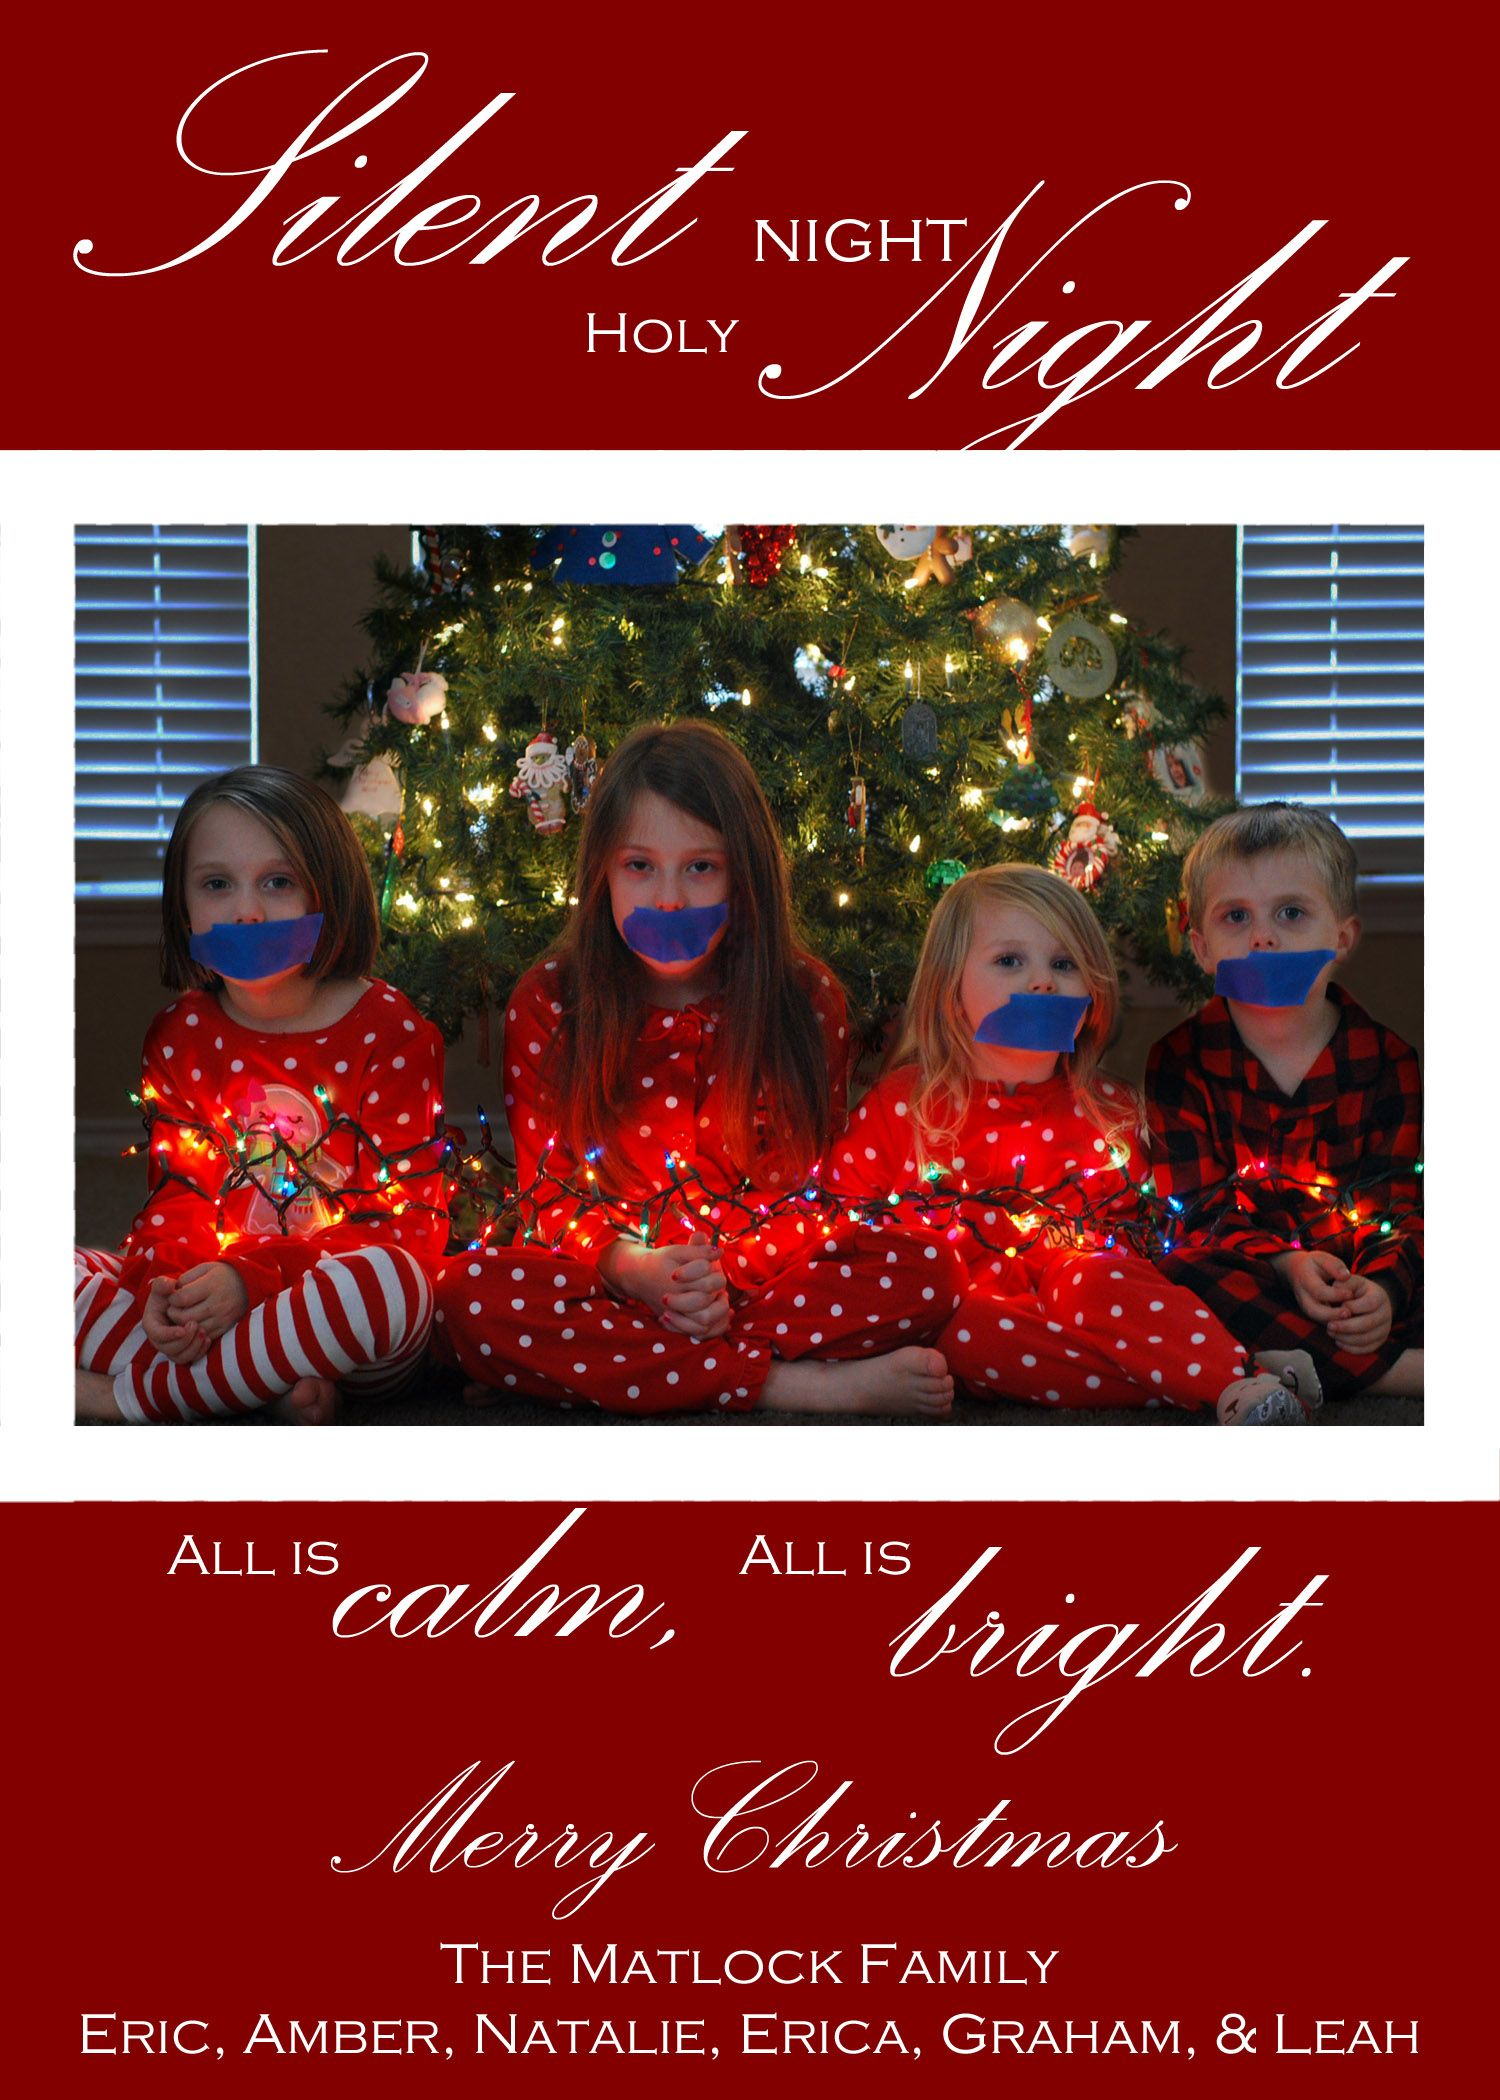 silent night | holidays | Pinterest | Silent night, Christmas and ...